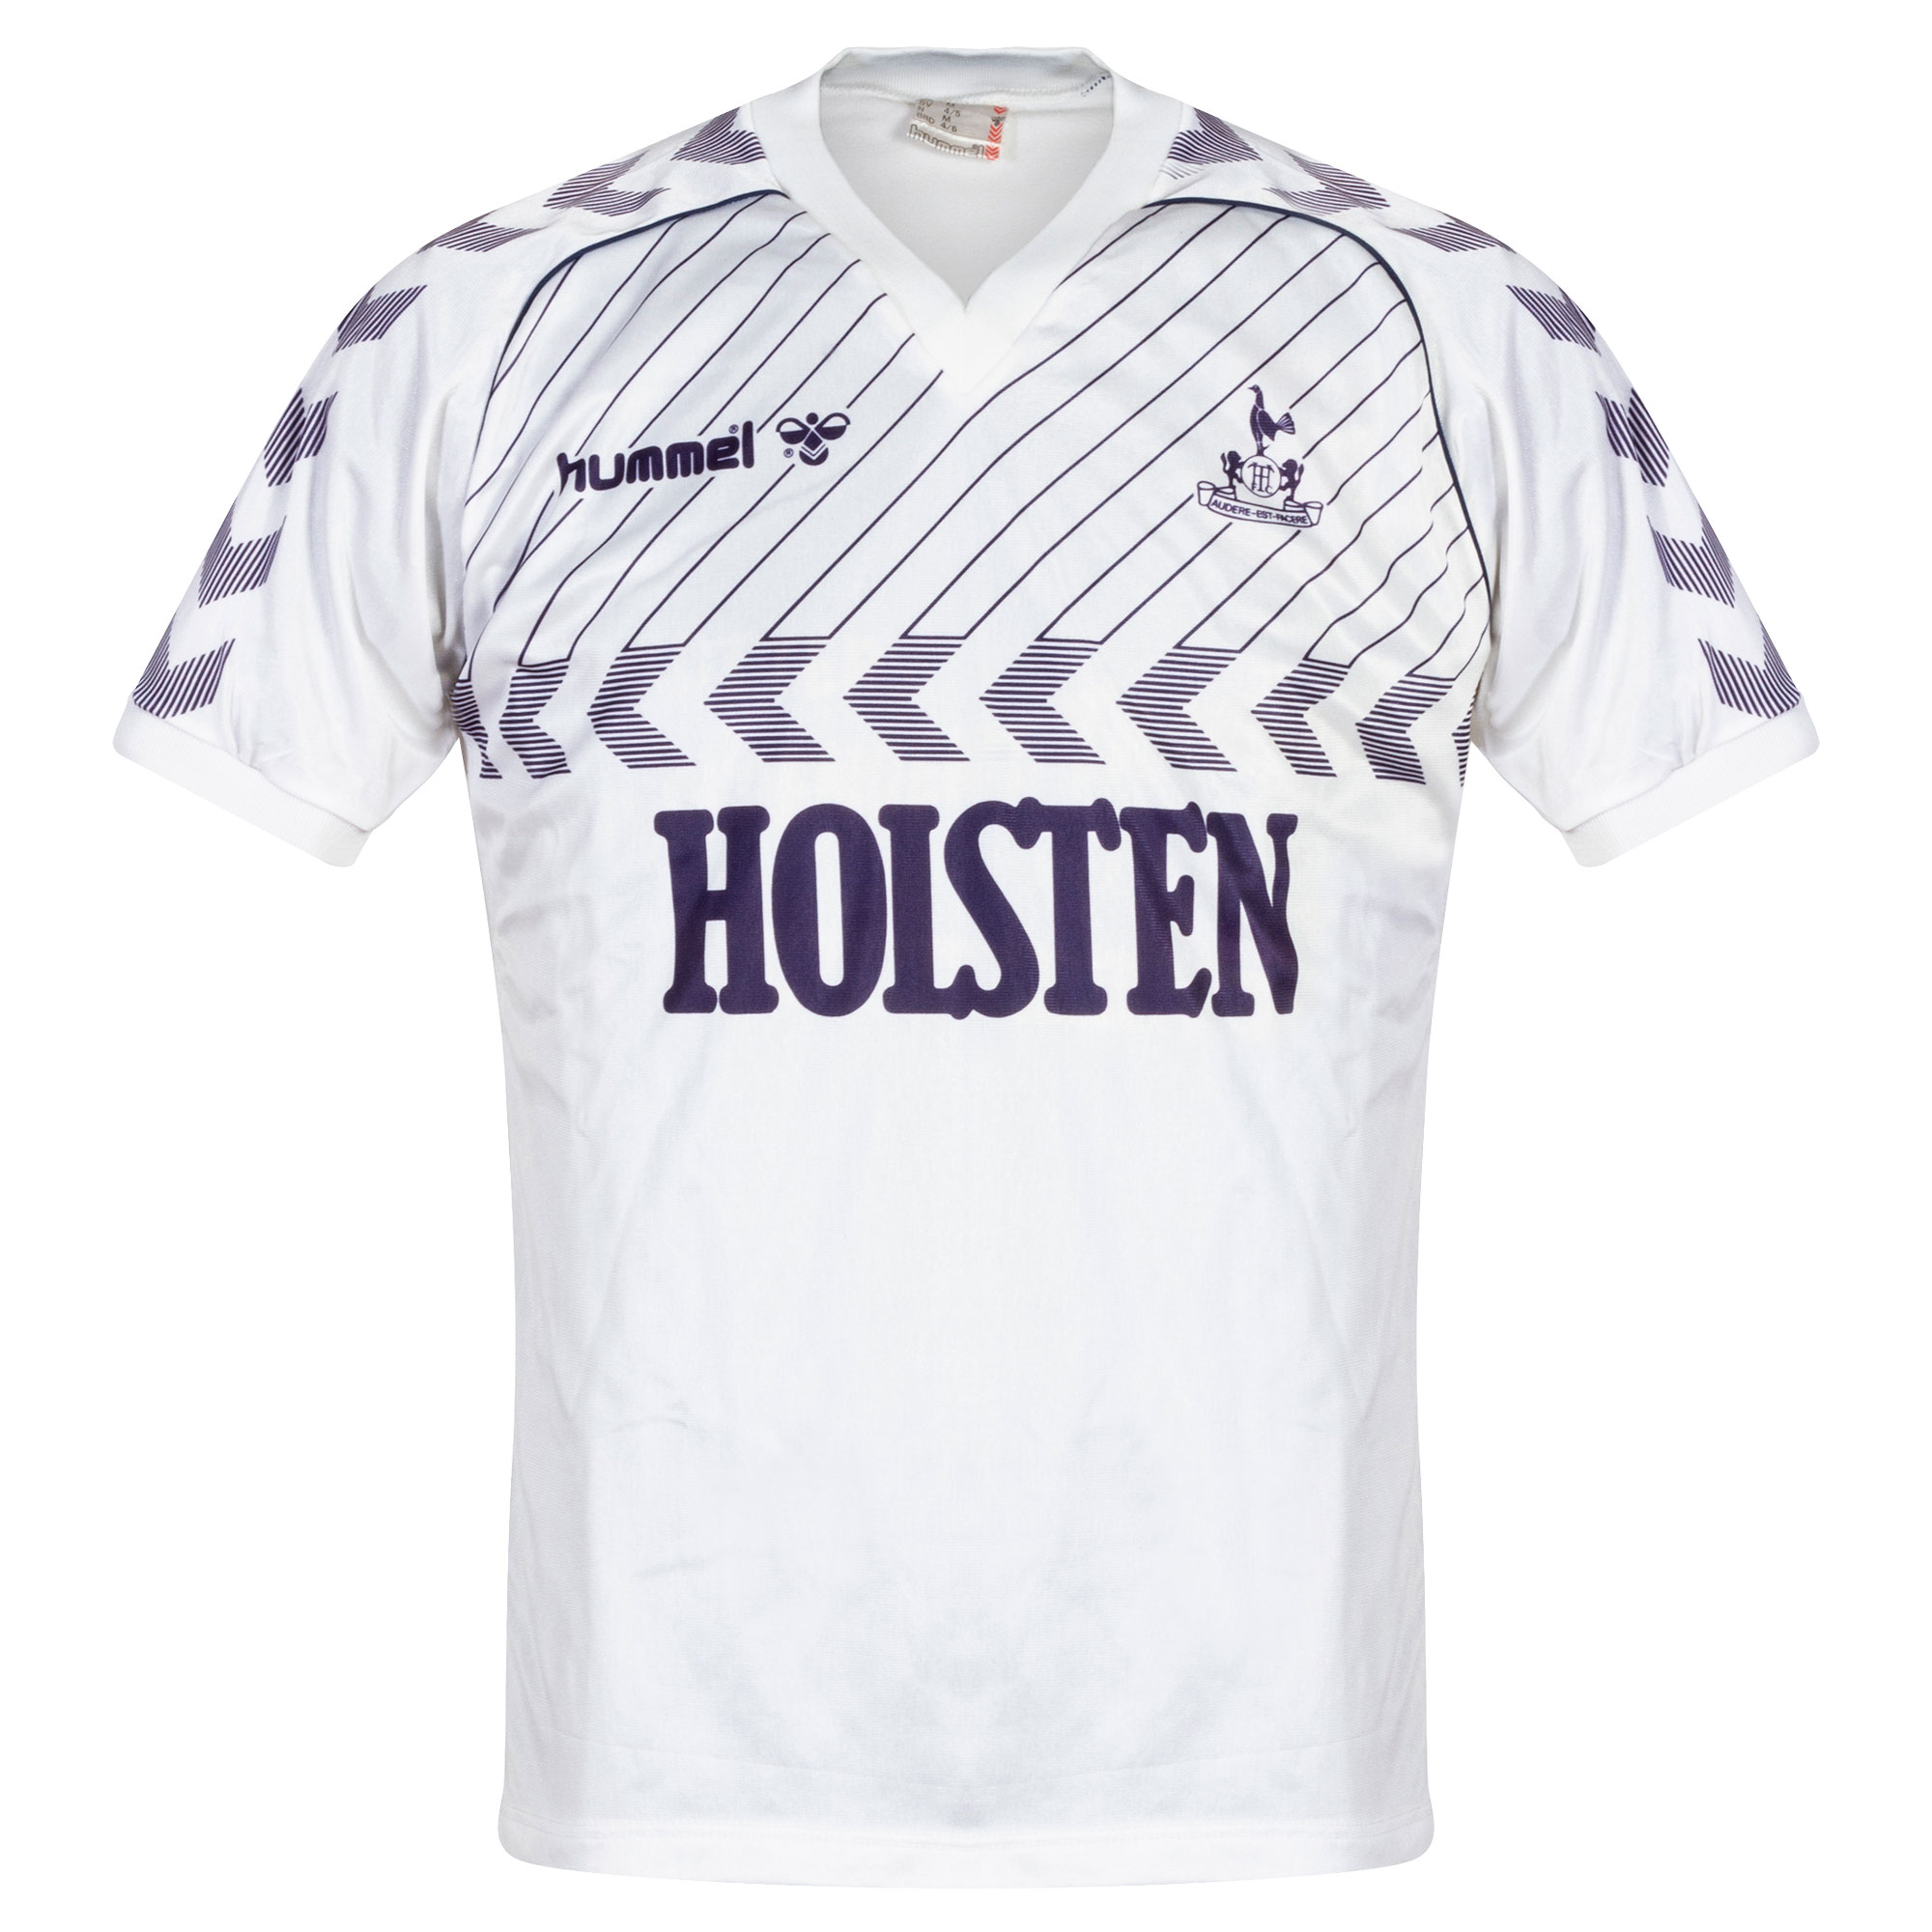 Hummel Tottenham Hotspur Home 1985-1987 Shirt - USED Condition (Excellent) - Size Medium